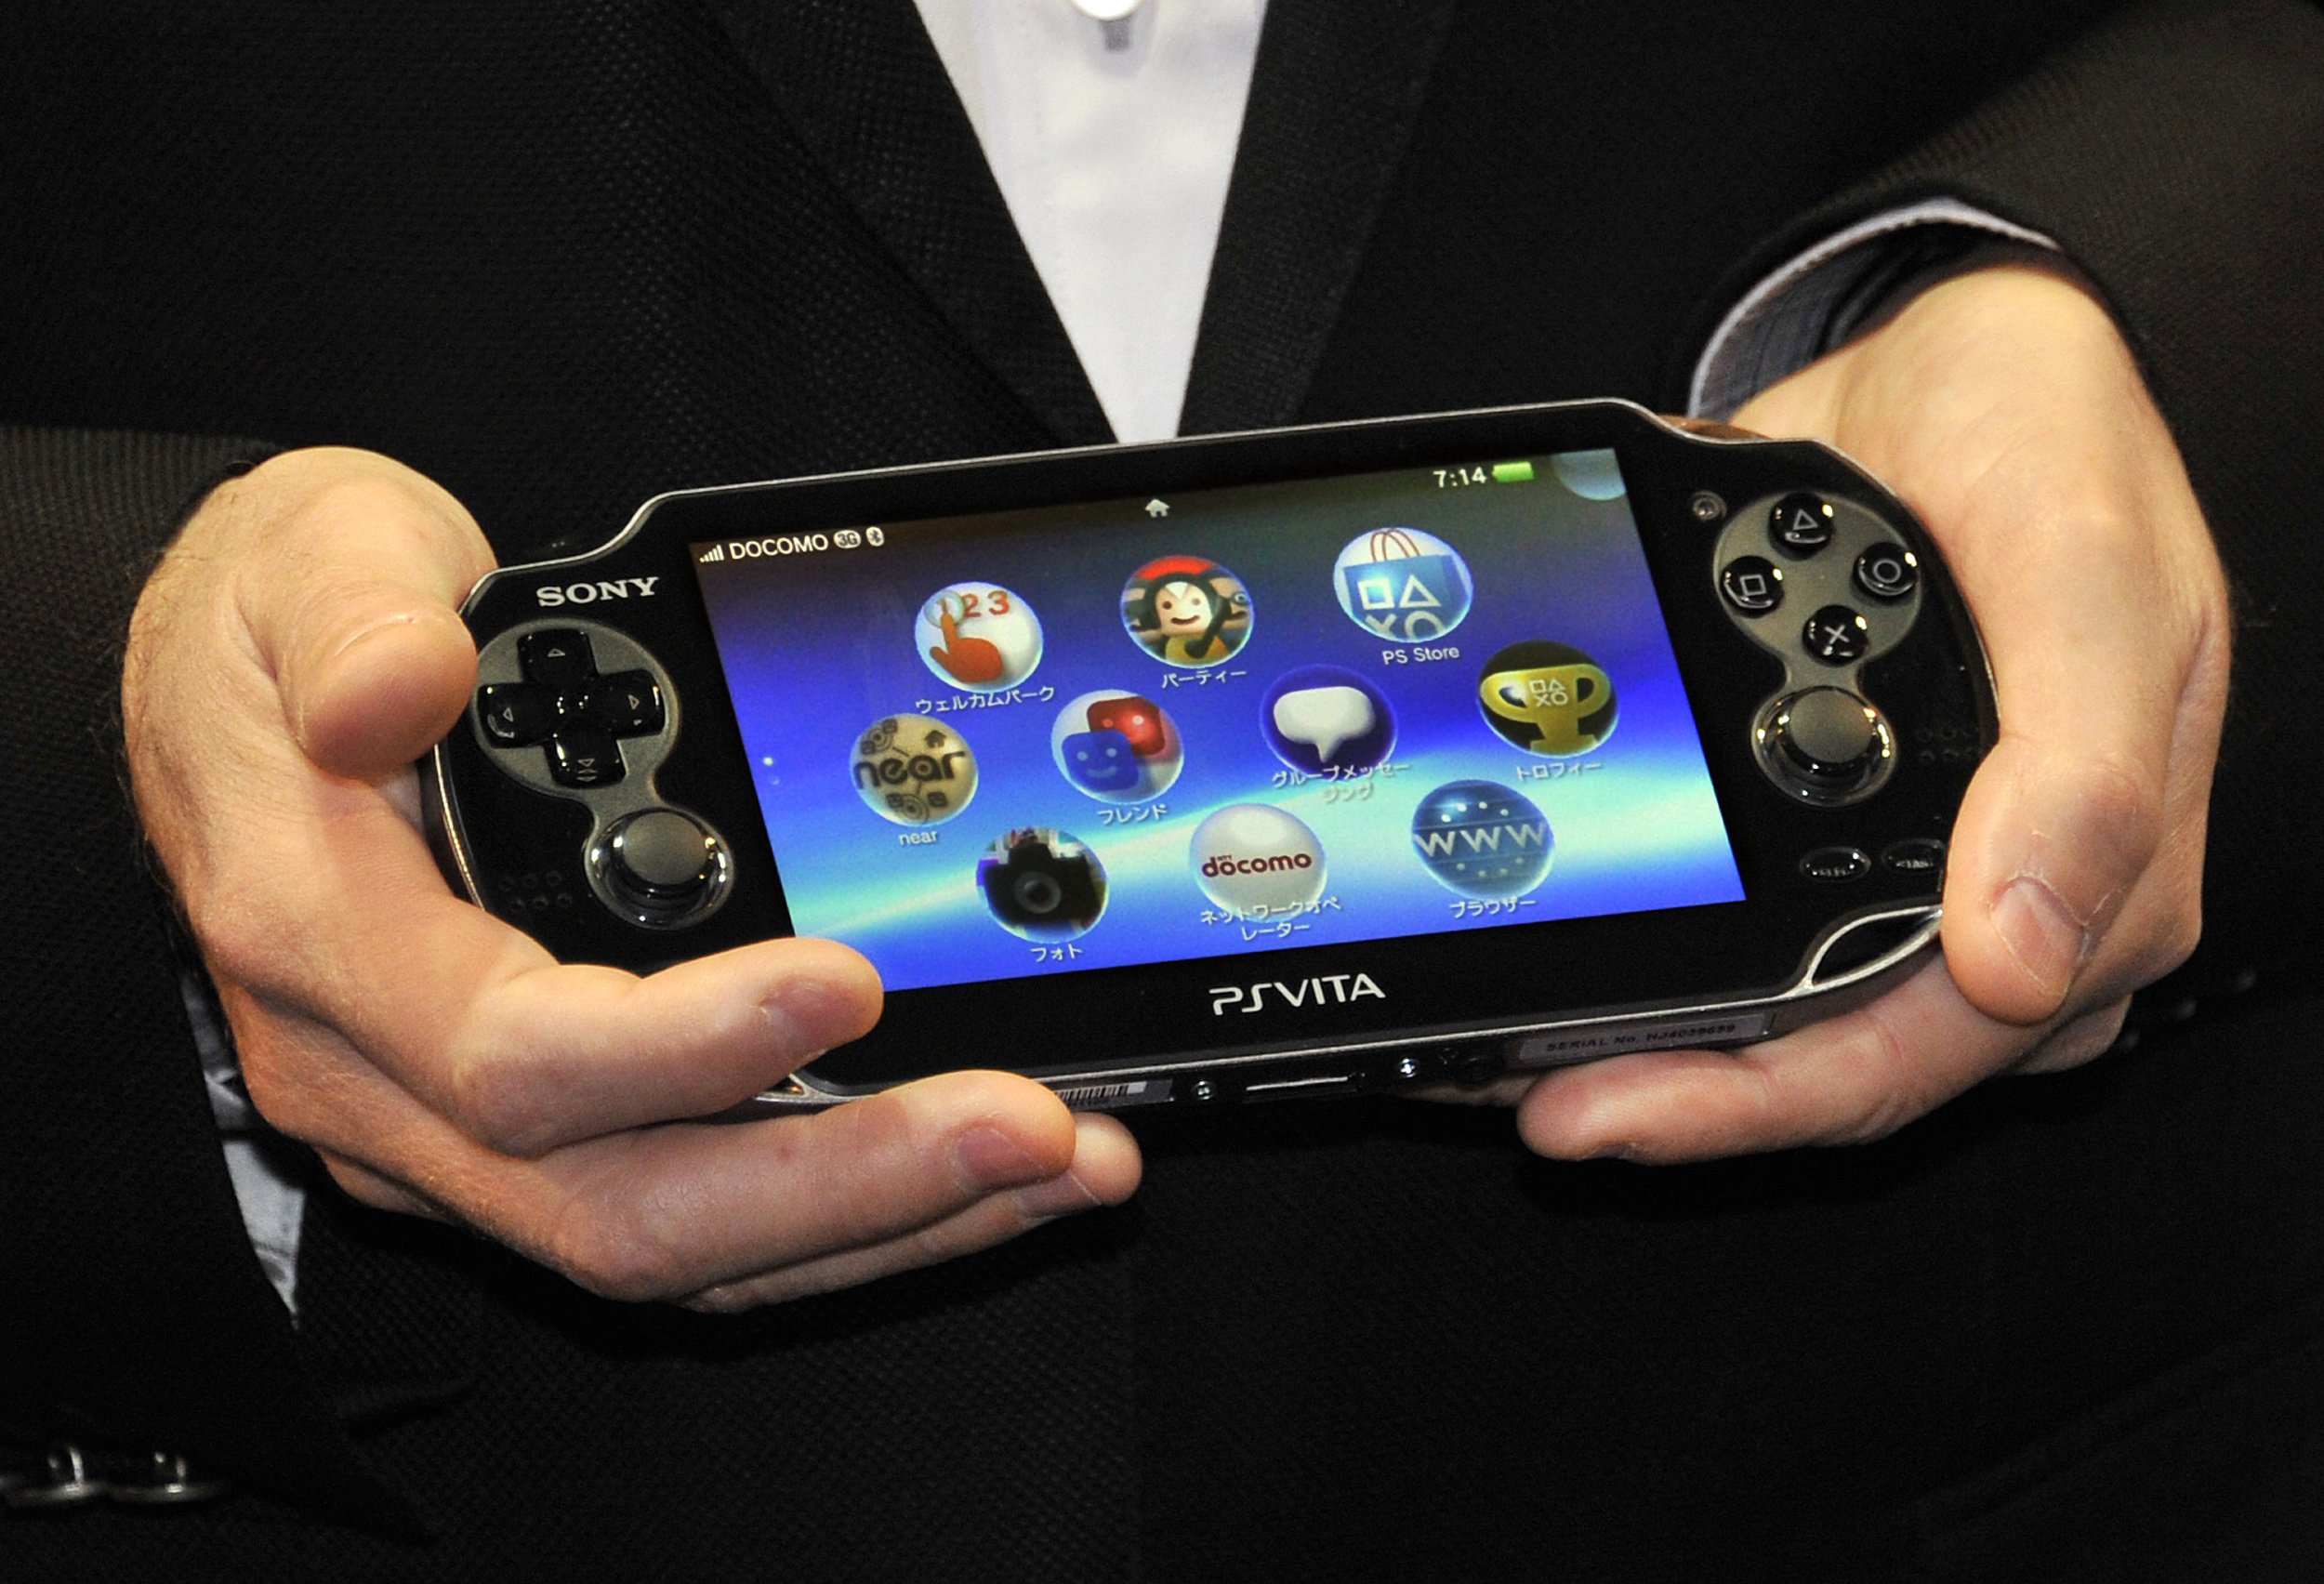 Sony Ps Vita Games : Sony confirms remote play is mandatory for all playstation